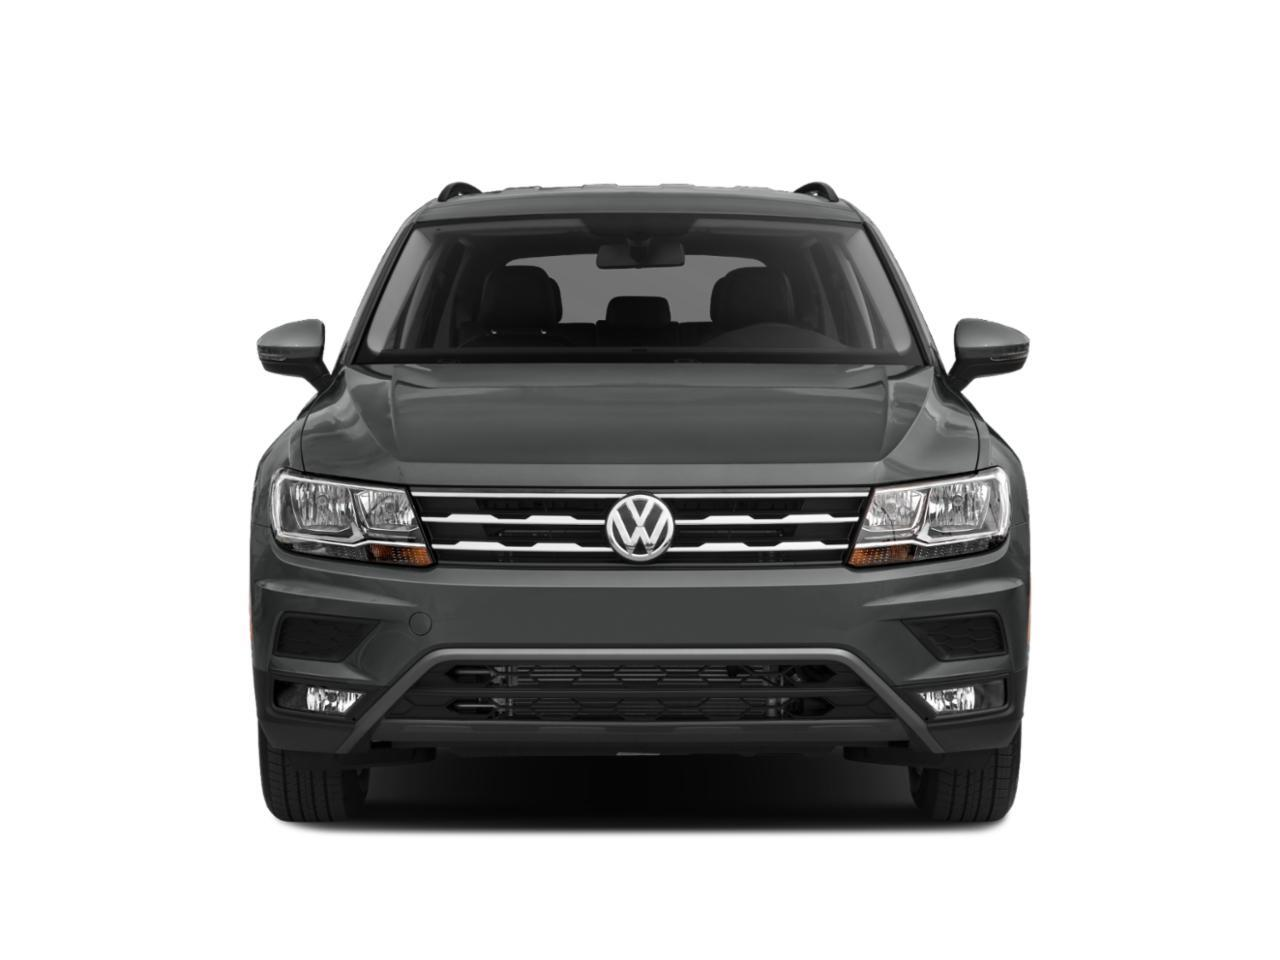 2021 Volkswagen Tiguan 2.0T SE 4MOTION Port Angeles WA